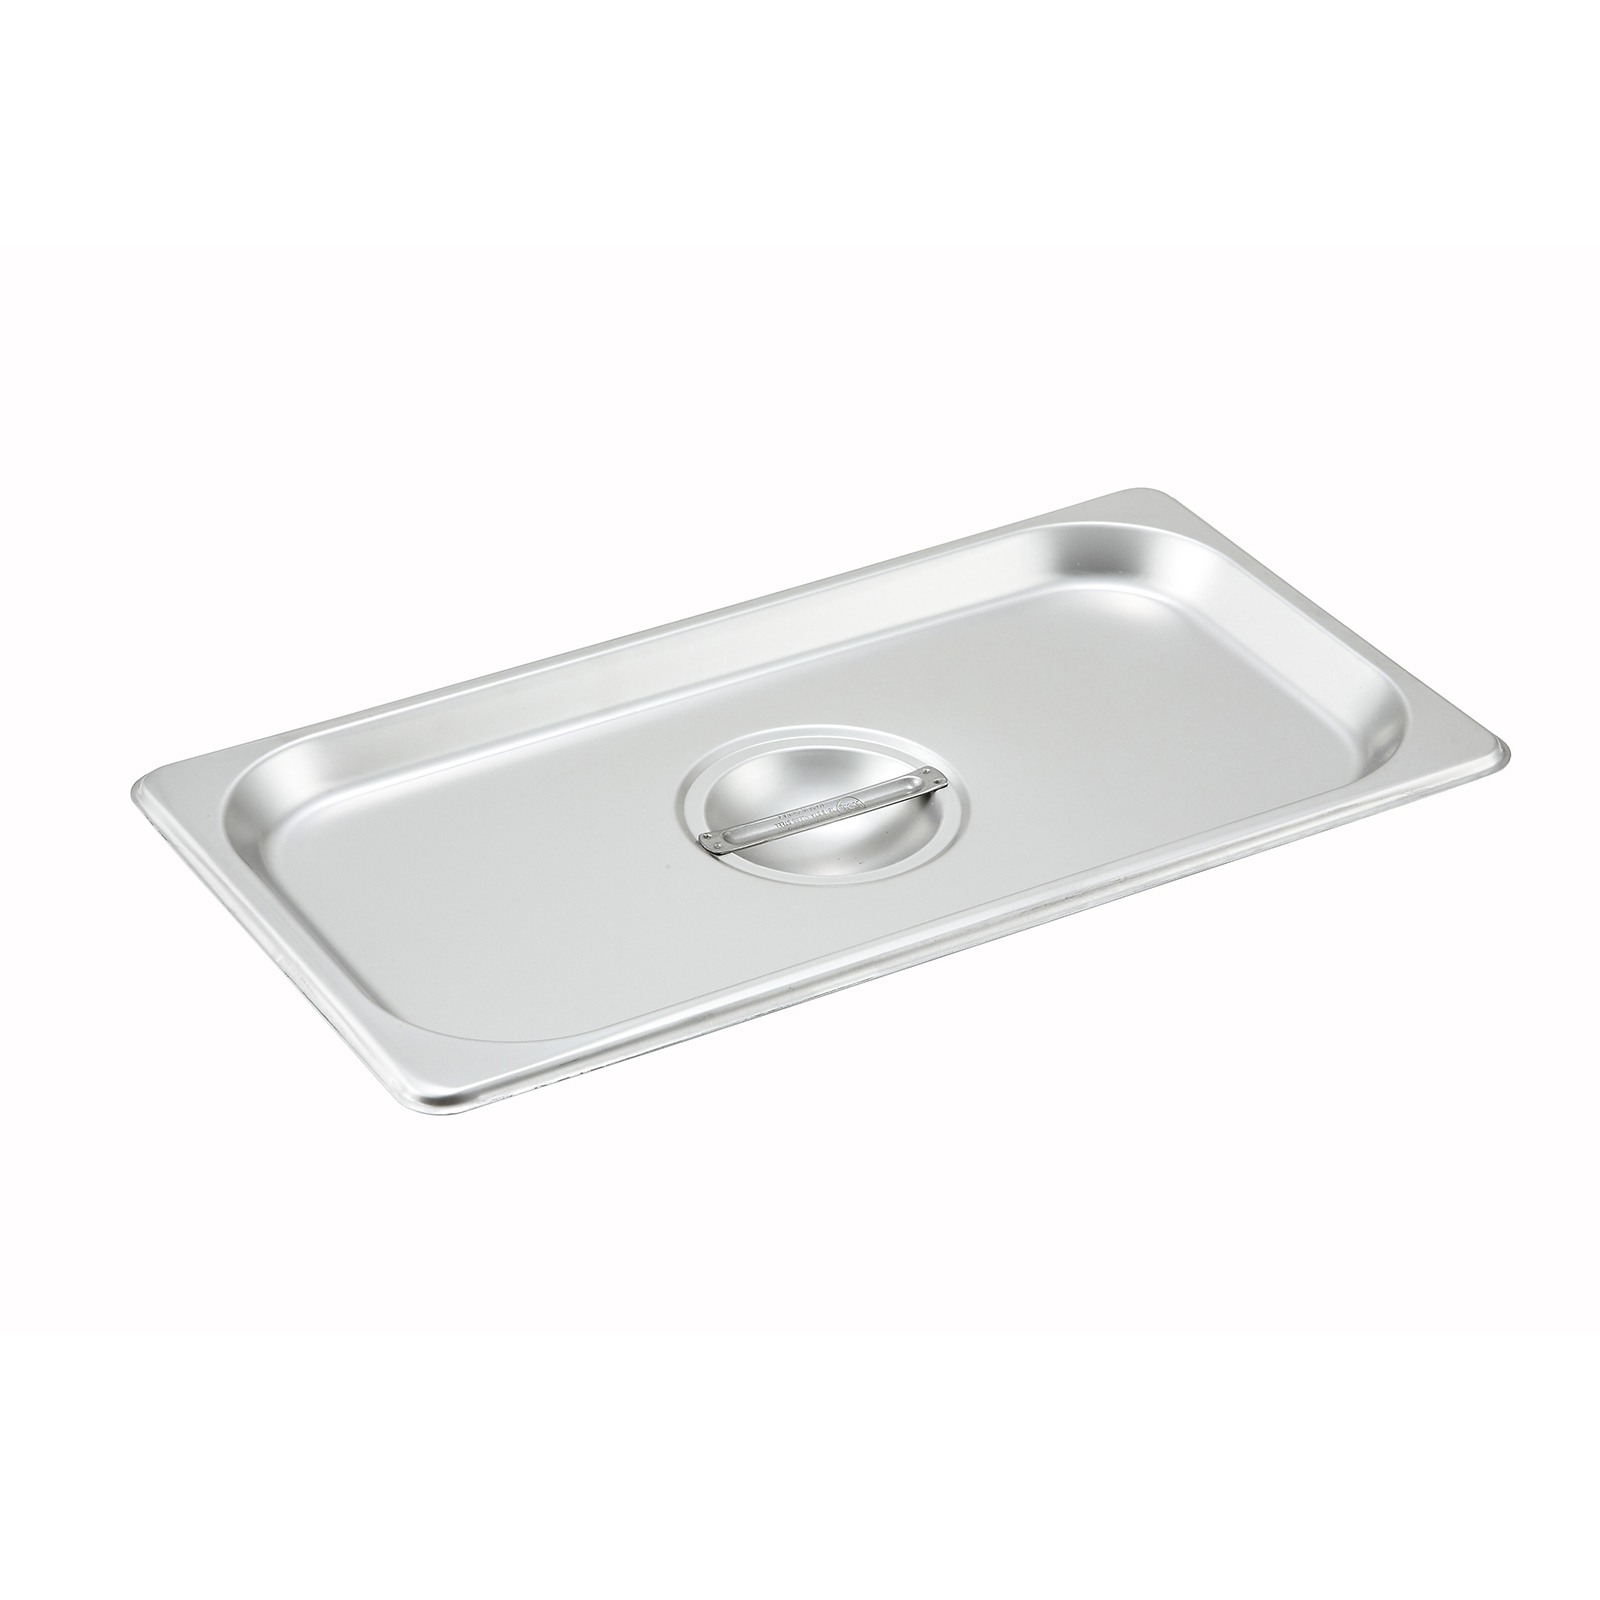 2400-1261 Winco SPSCT steam table pan cover, stainless steel